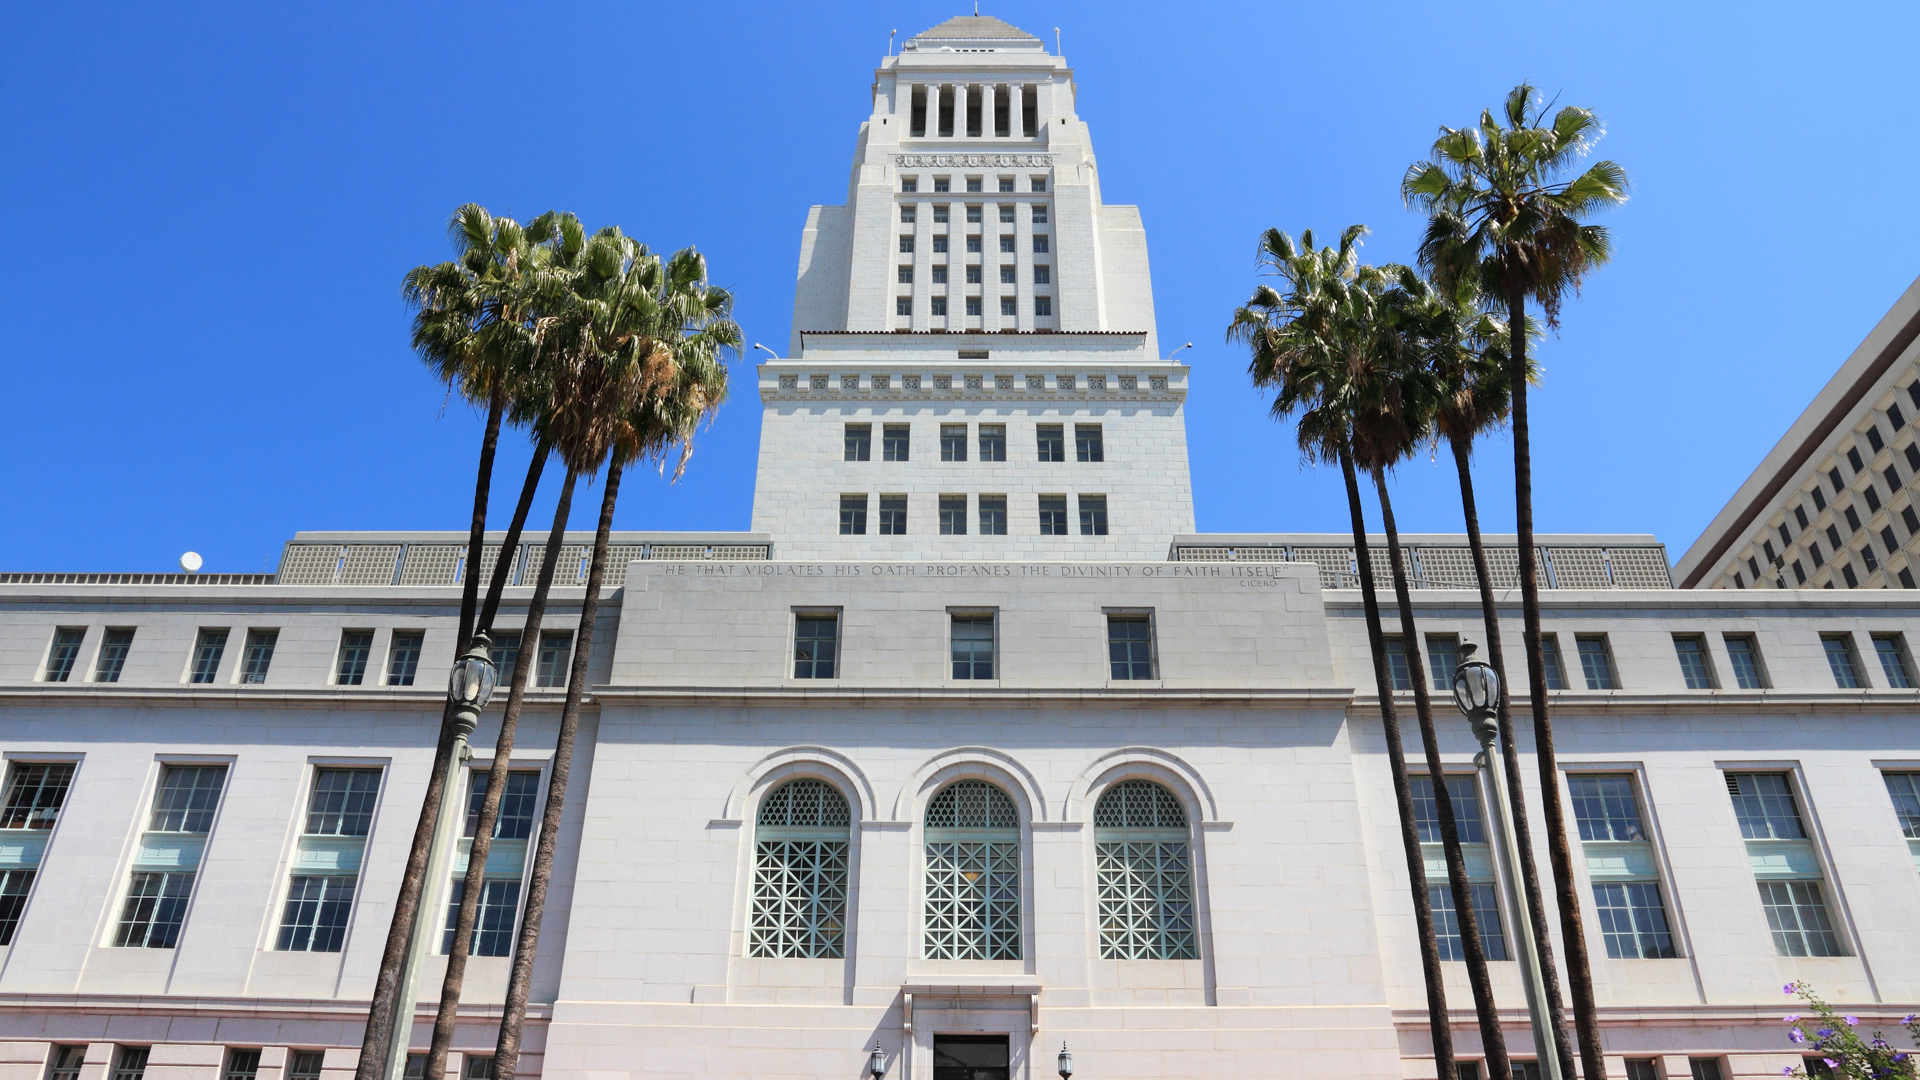 Los Angeles City Hall is seen in this file photo. (Credit: iStock / Getty Images Plus)